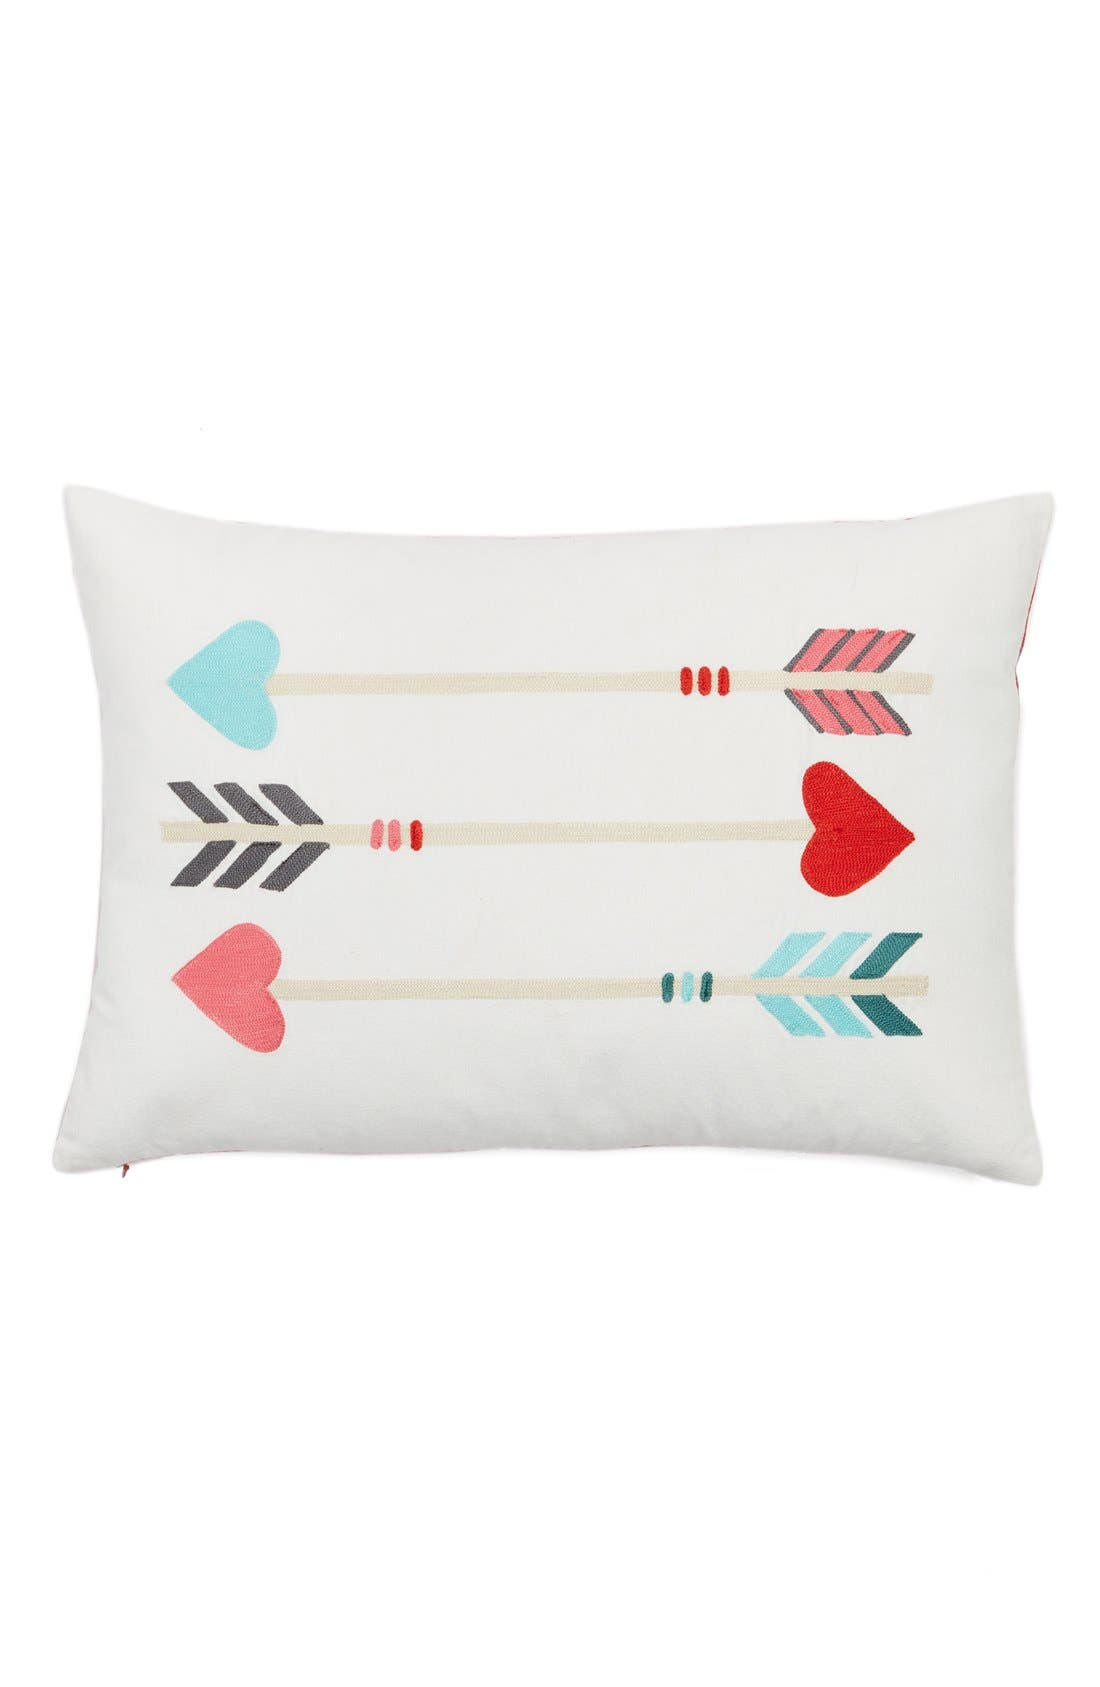 Main Image - Nordstrom at Home 'Arrows' Pillow